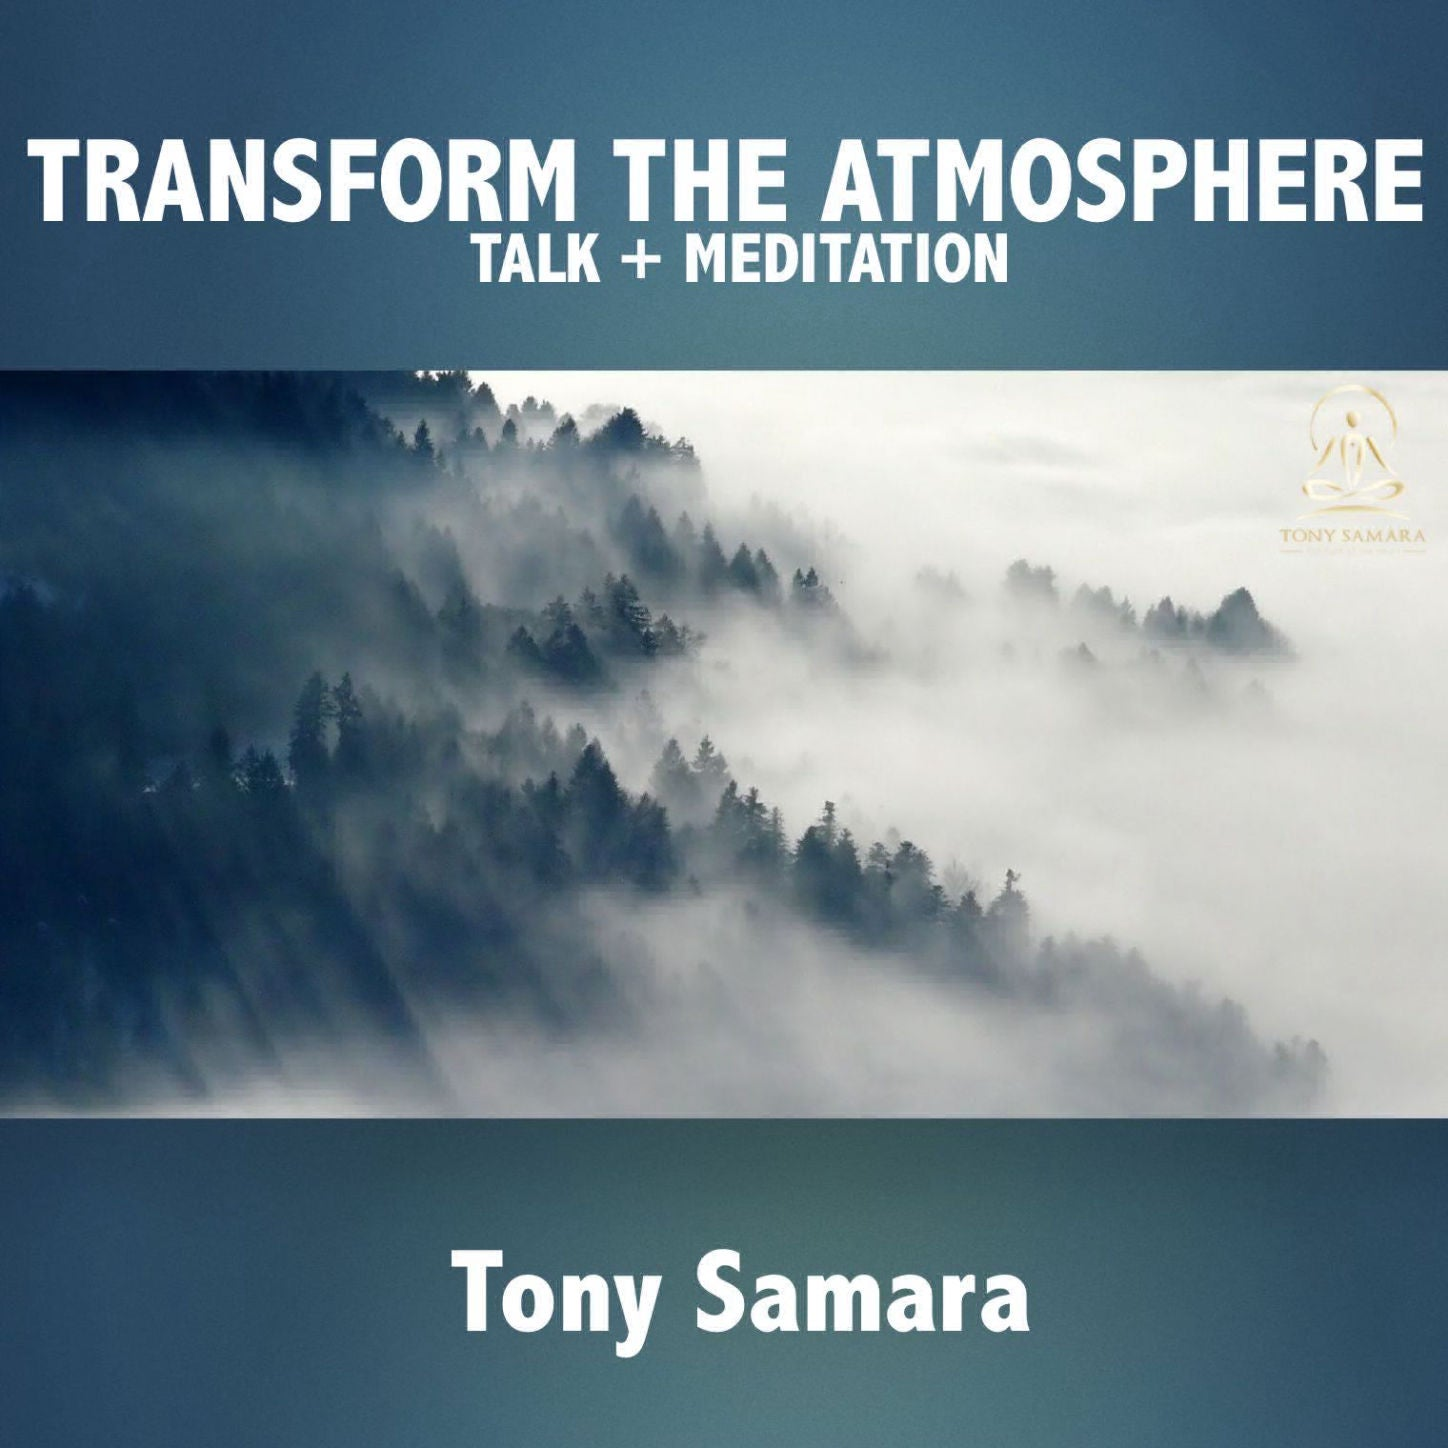 Transform the  Atmosphere  Talk + Meditation - Tony Samara Meditation